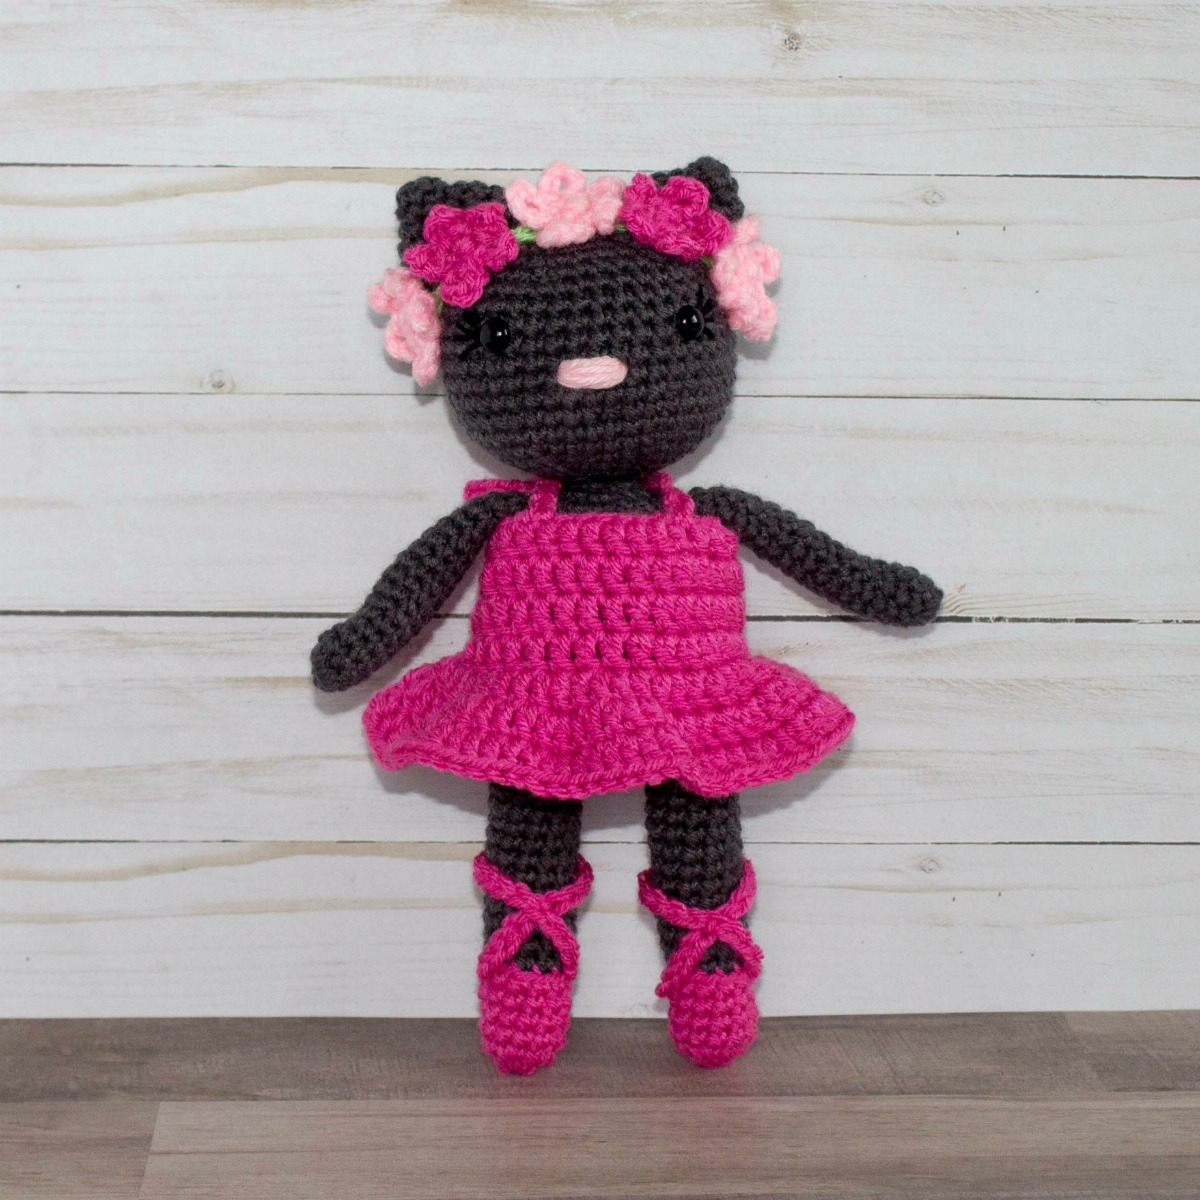 Kitty Ballerina Amigurumi And Baby Shoes Crochet Pattern | Crochet ... | 1200x1200